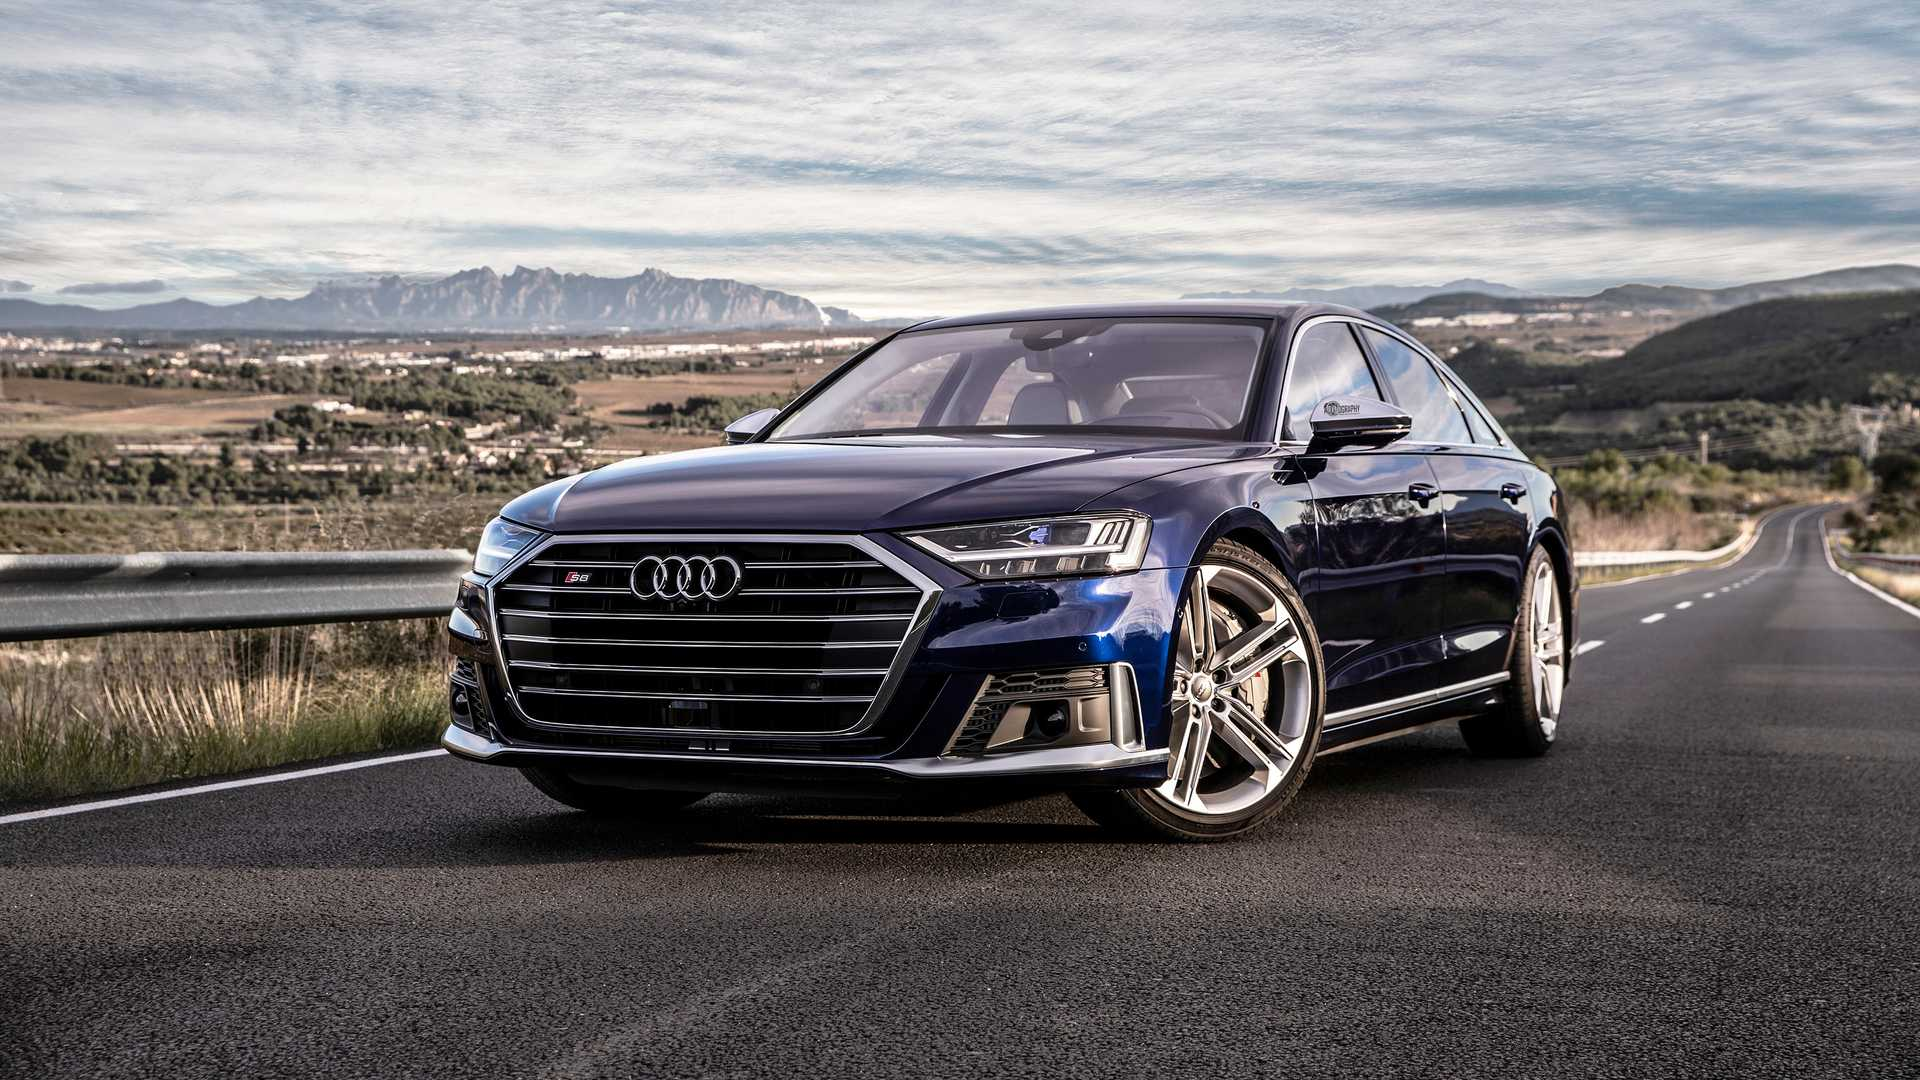 see the new audi s8 do 0 to 62 mph in only 3.57 seconds